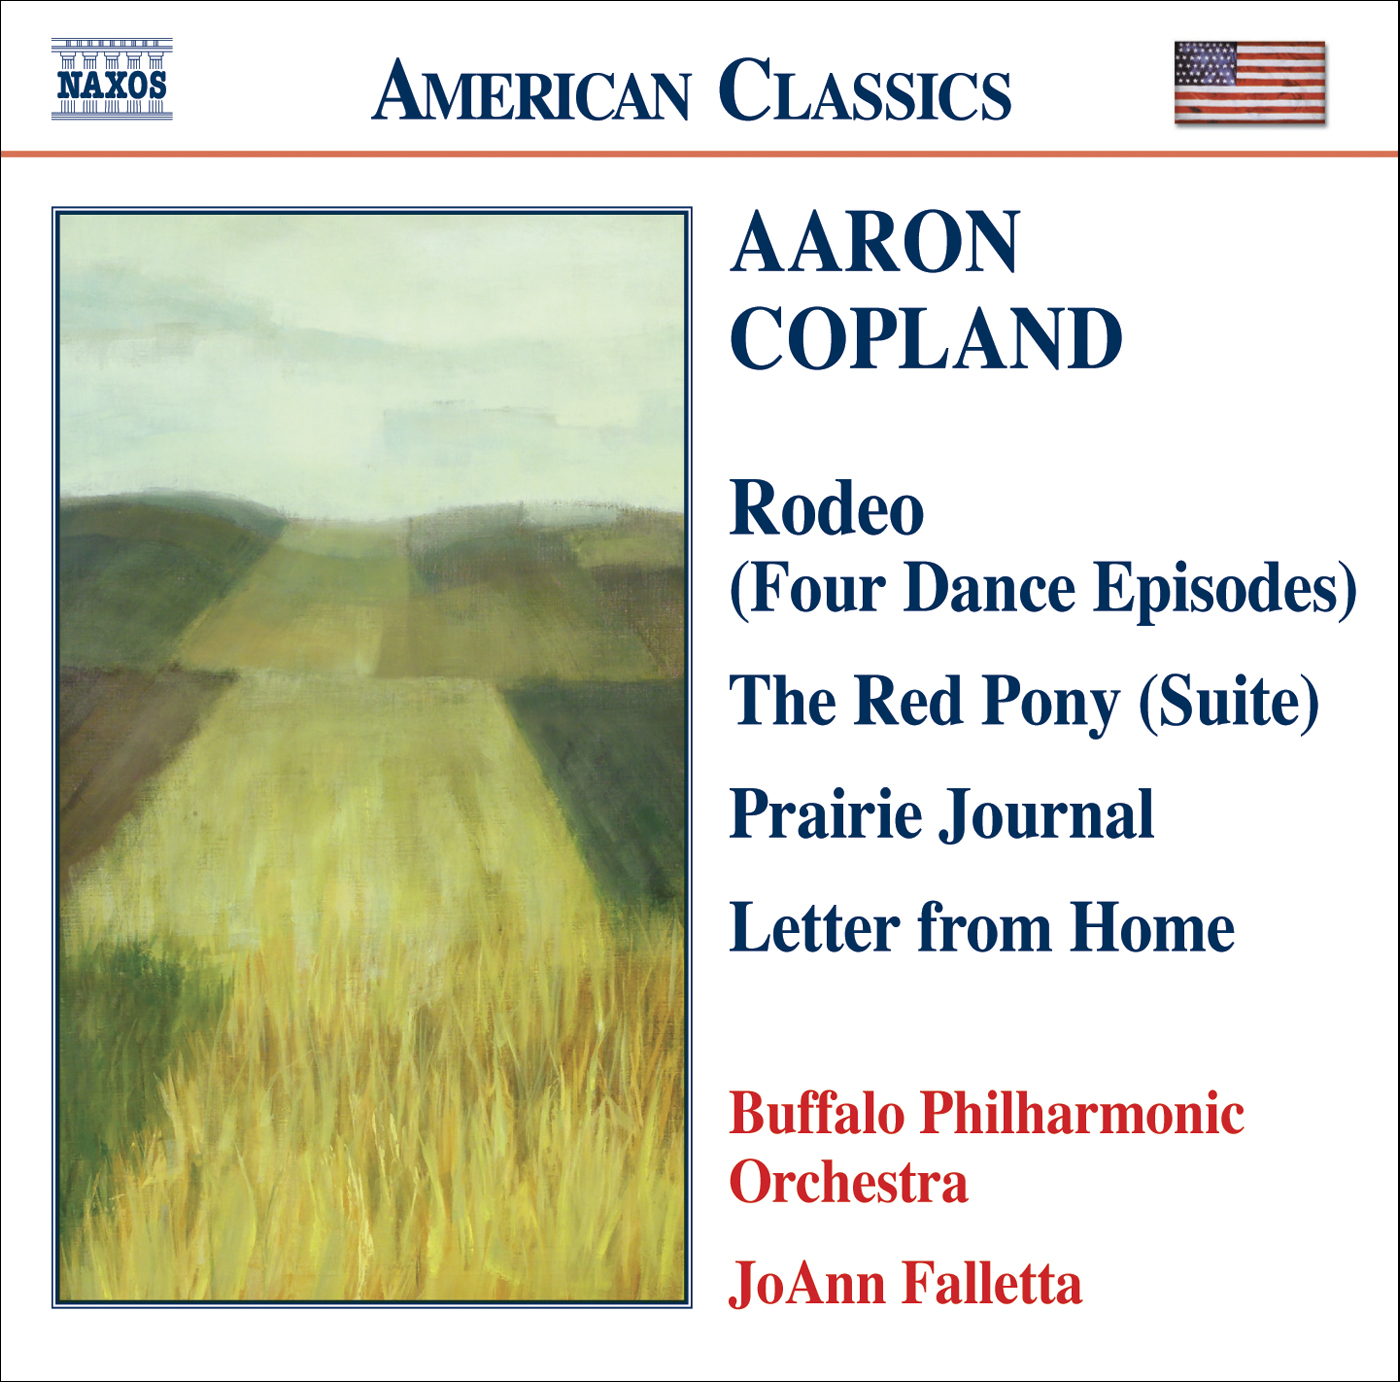 COPLAND: Prairie Journal - The Red Pony Suite - Letter from Home